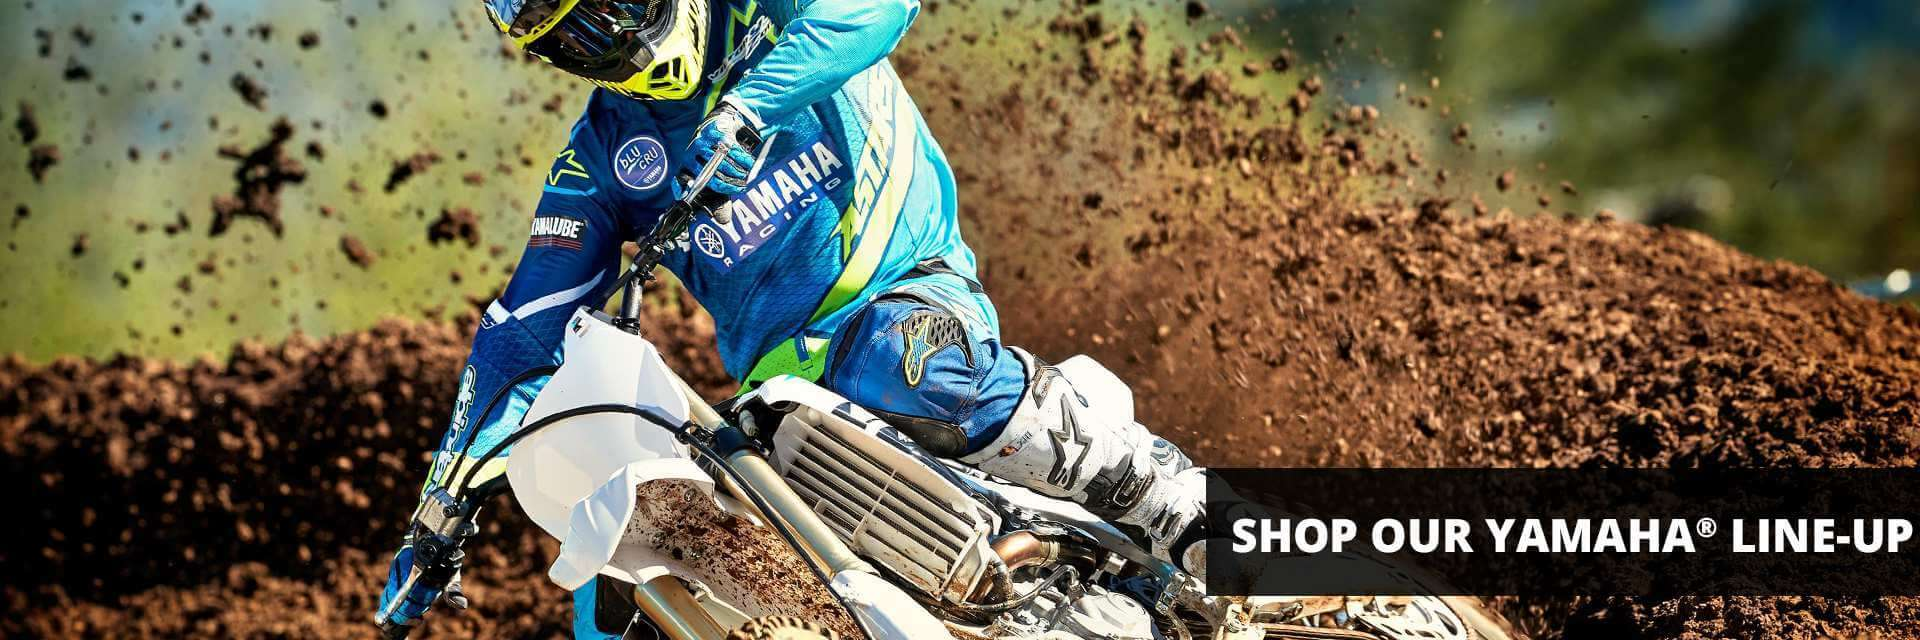 Broadway Powersports | Shop Yamaha Line-Up